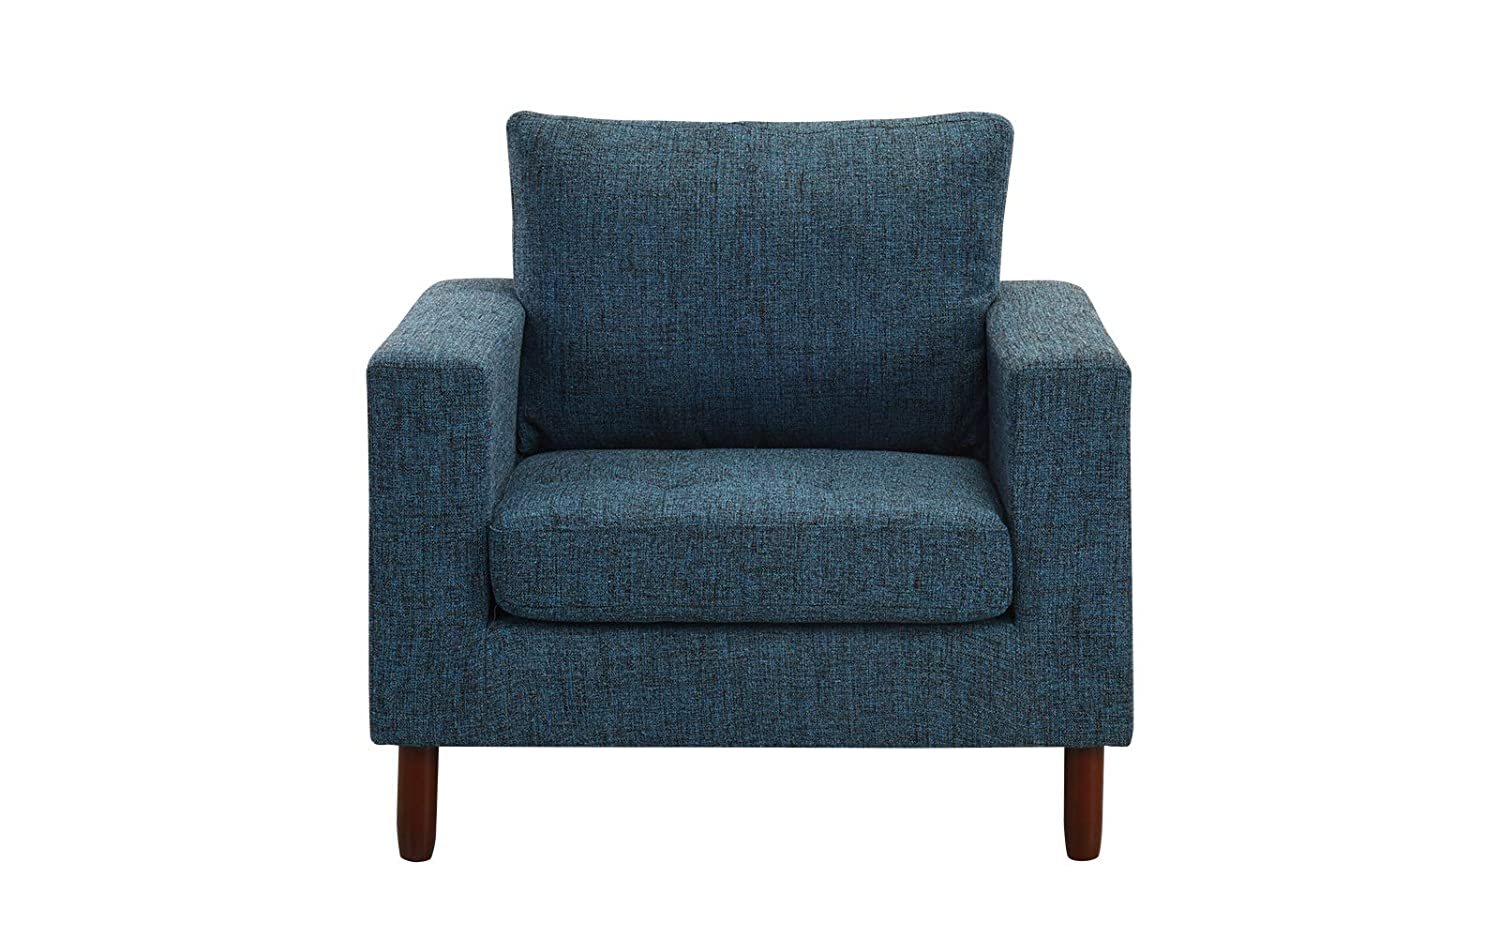 Modern Tufted Linen Fabric Armchair, Living Room Chair (Dark Blue)